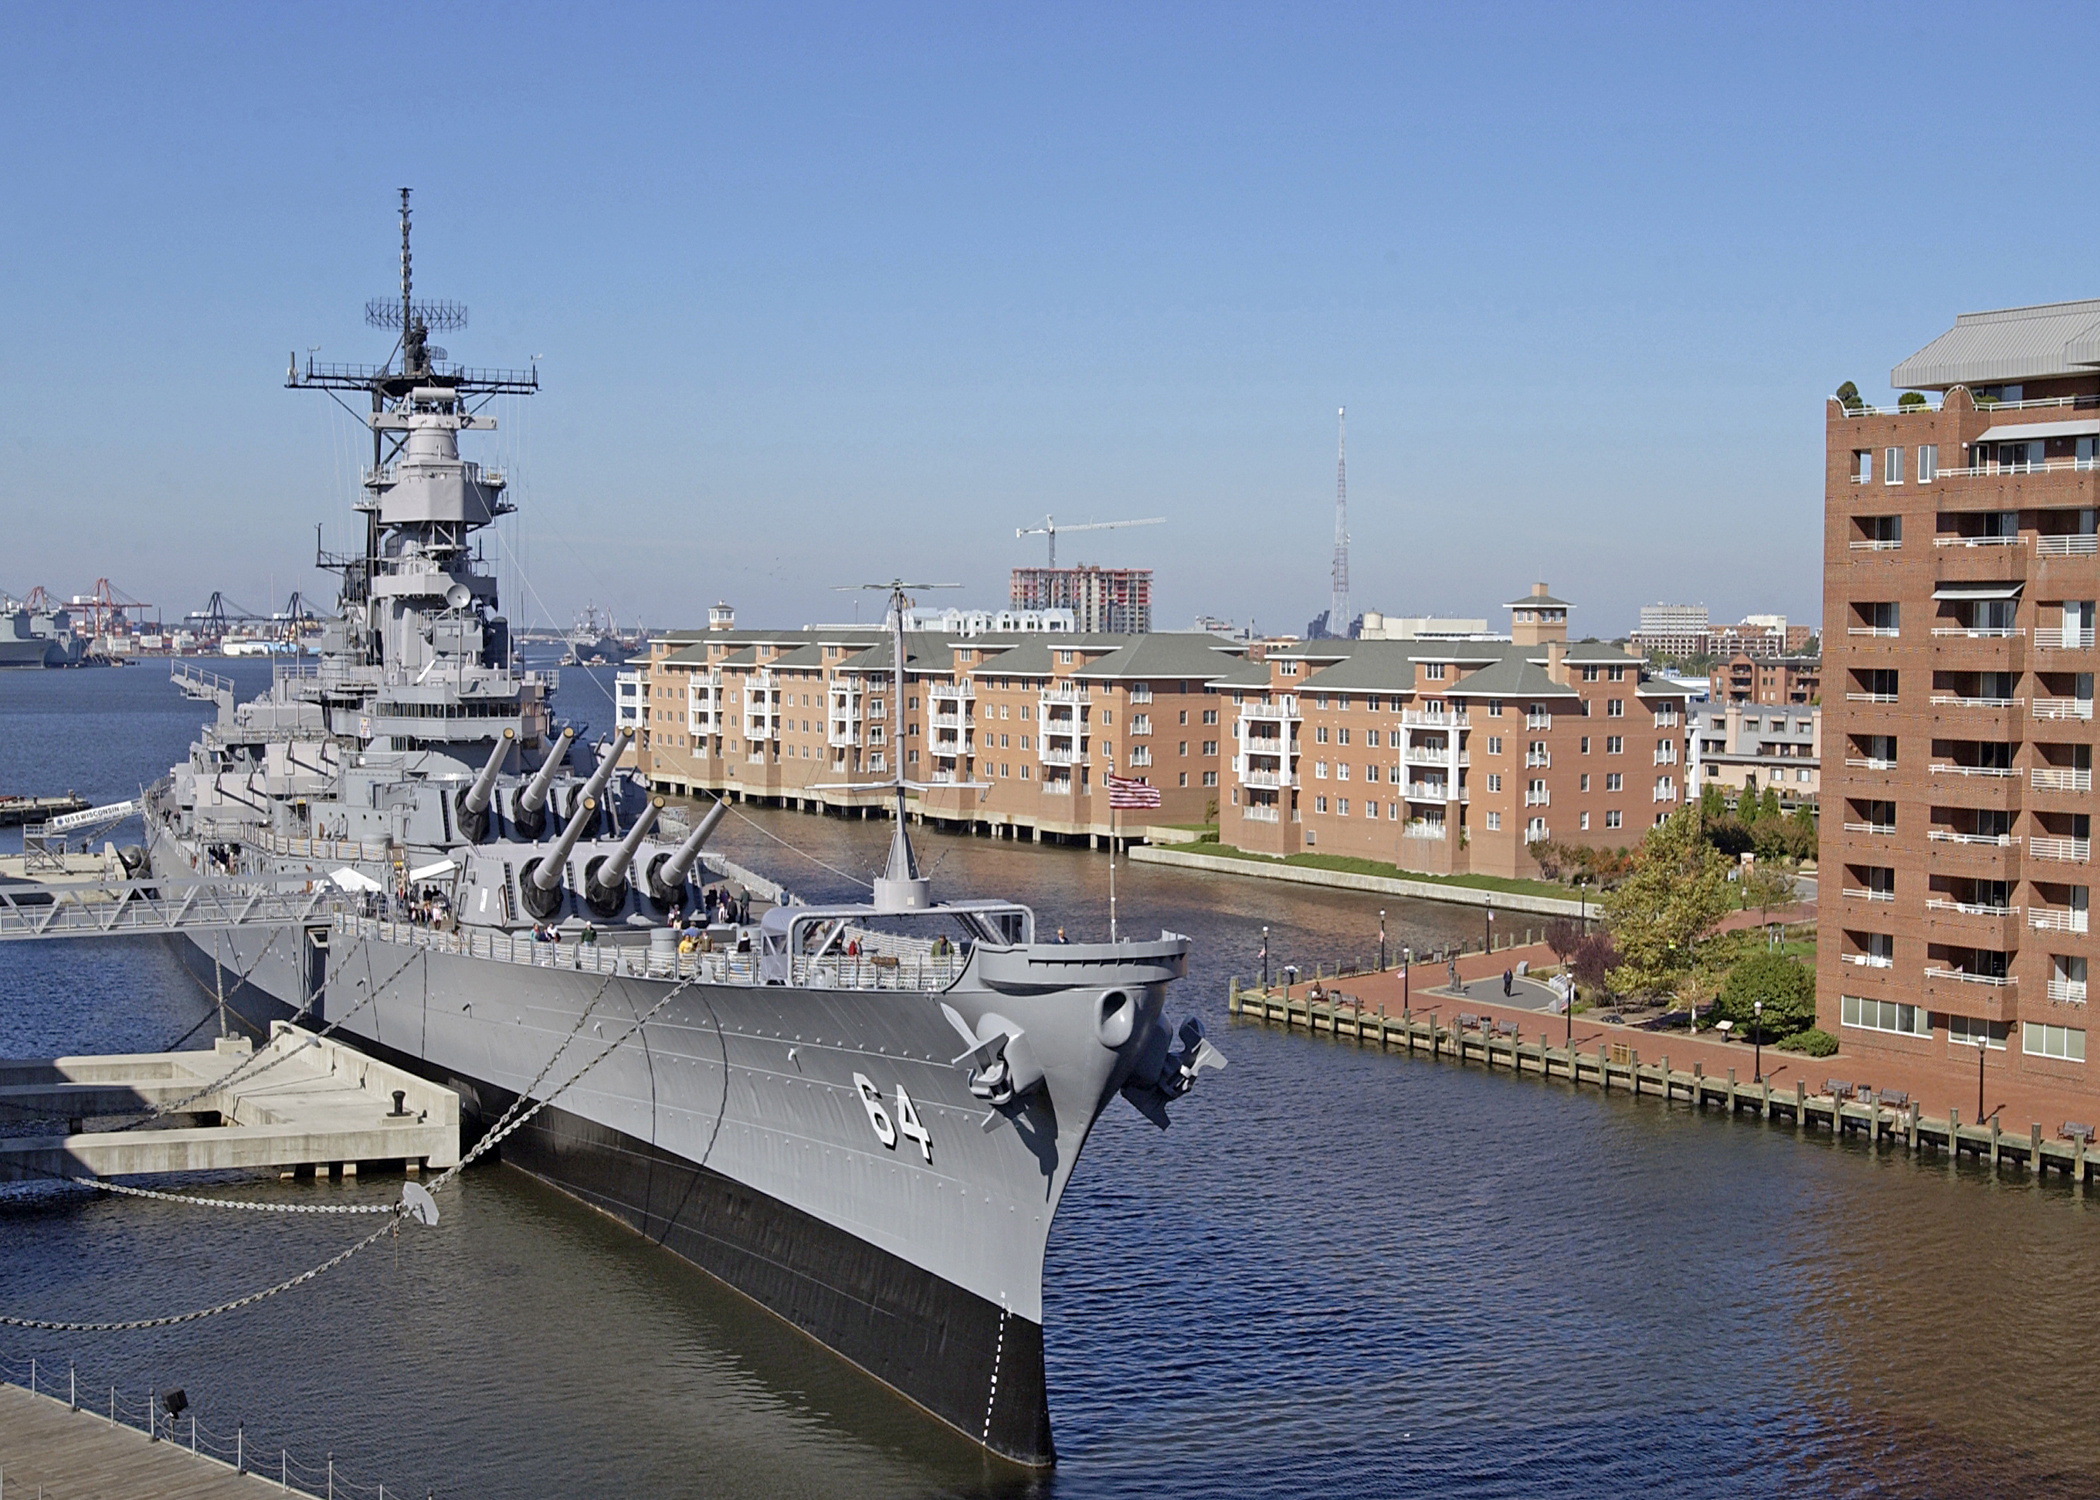 FileUS Navy ND The Battleship USS Wisconsin BB - Ship museums in us